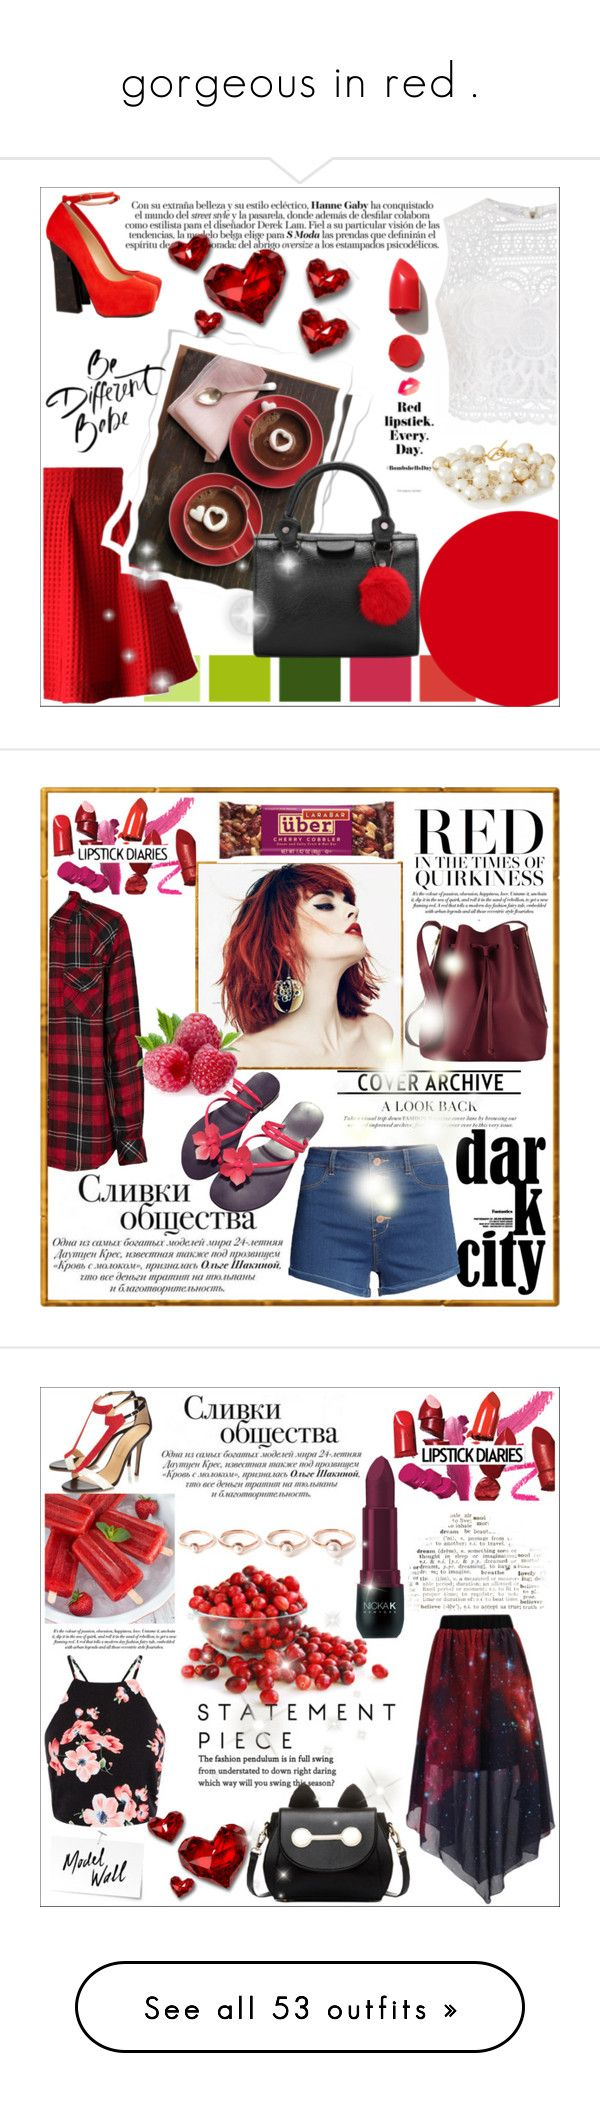 """gorgeous in red ."" by ainzme ❤ liked on Polyvore featuring Ally Fashion, Chicwish, Aperlaï, The Limited, NARS Cosmetics, Rails, H&M, Sophie Hulme, Camilla Elphick and Nicka K"